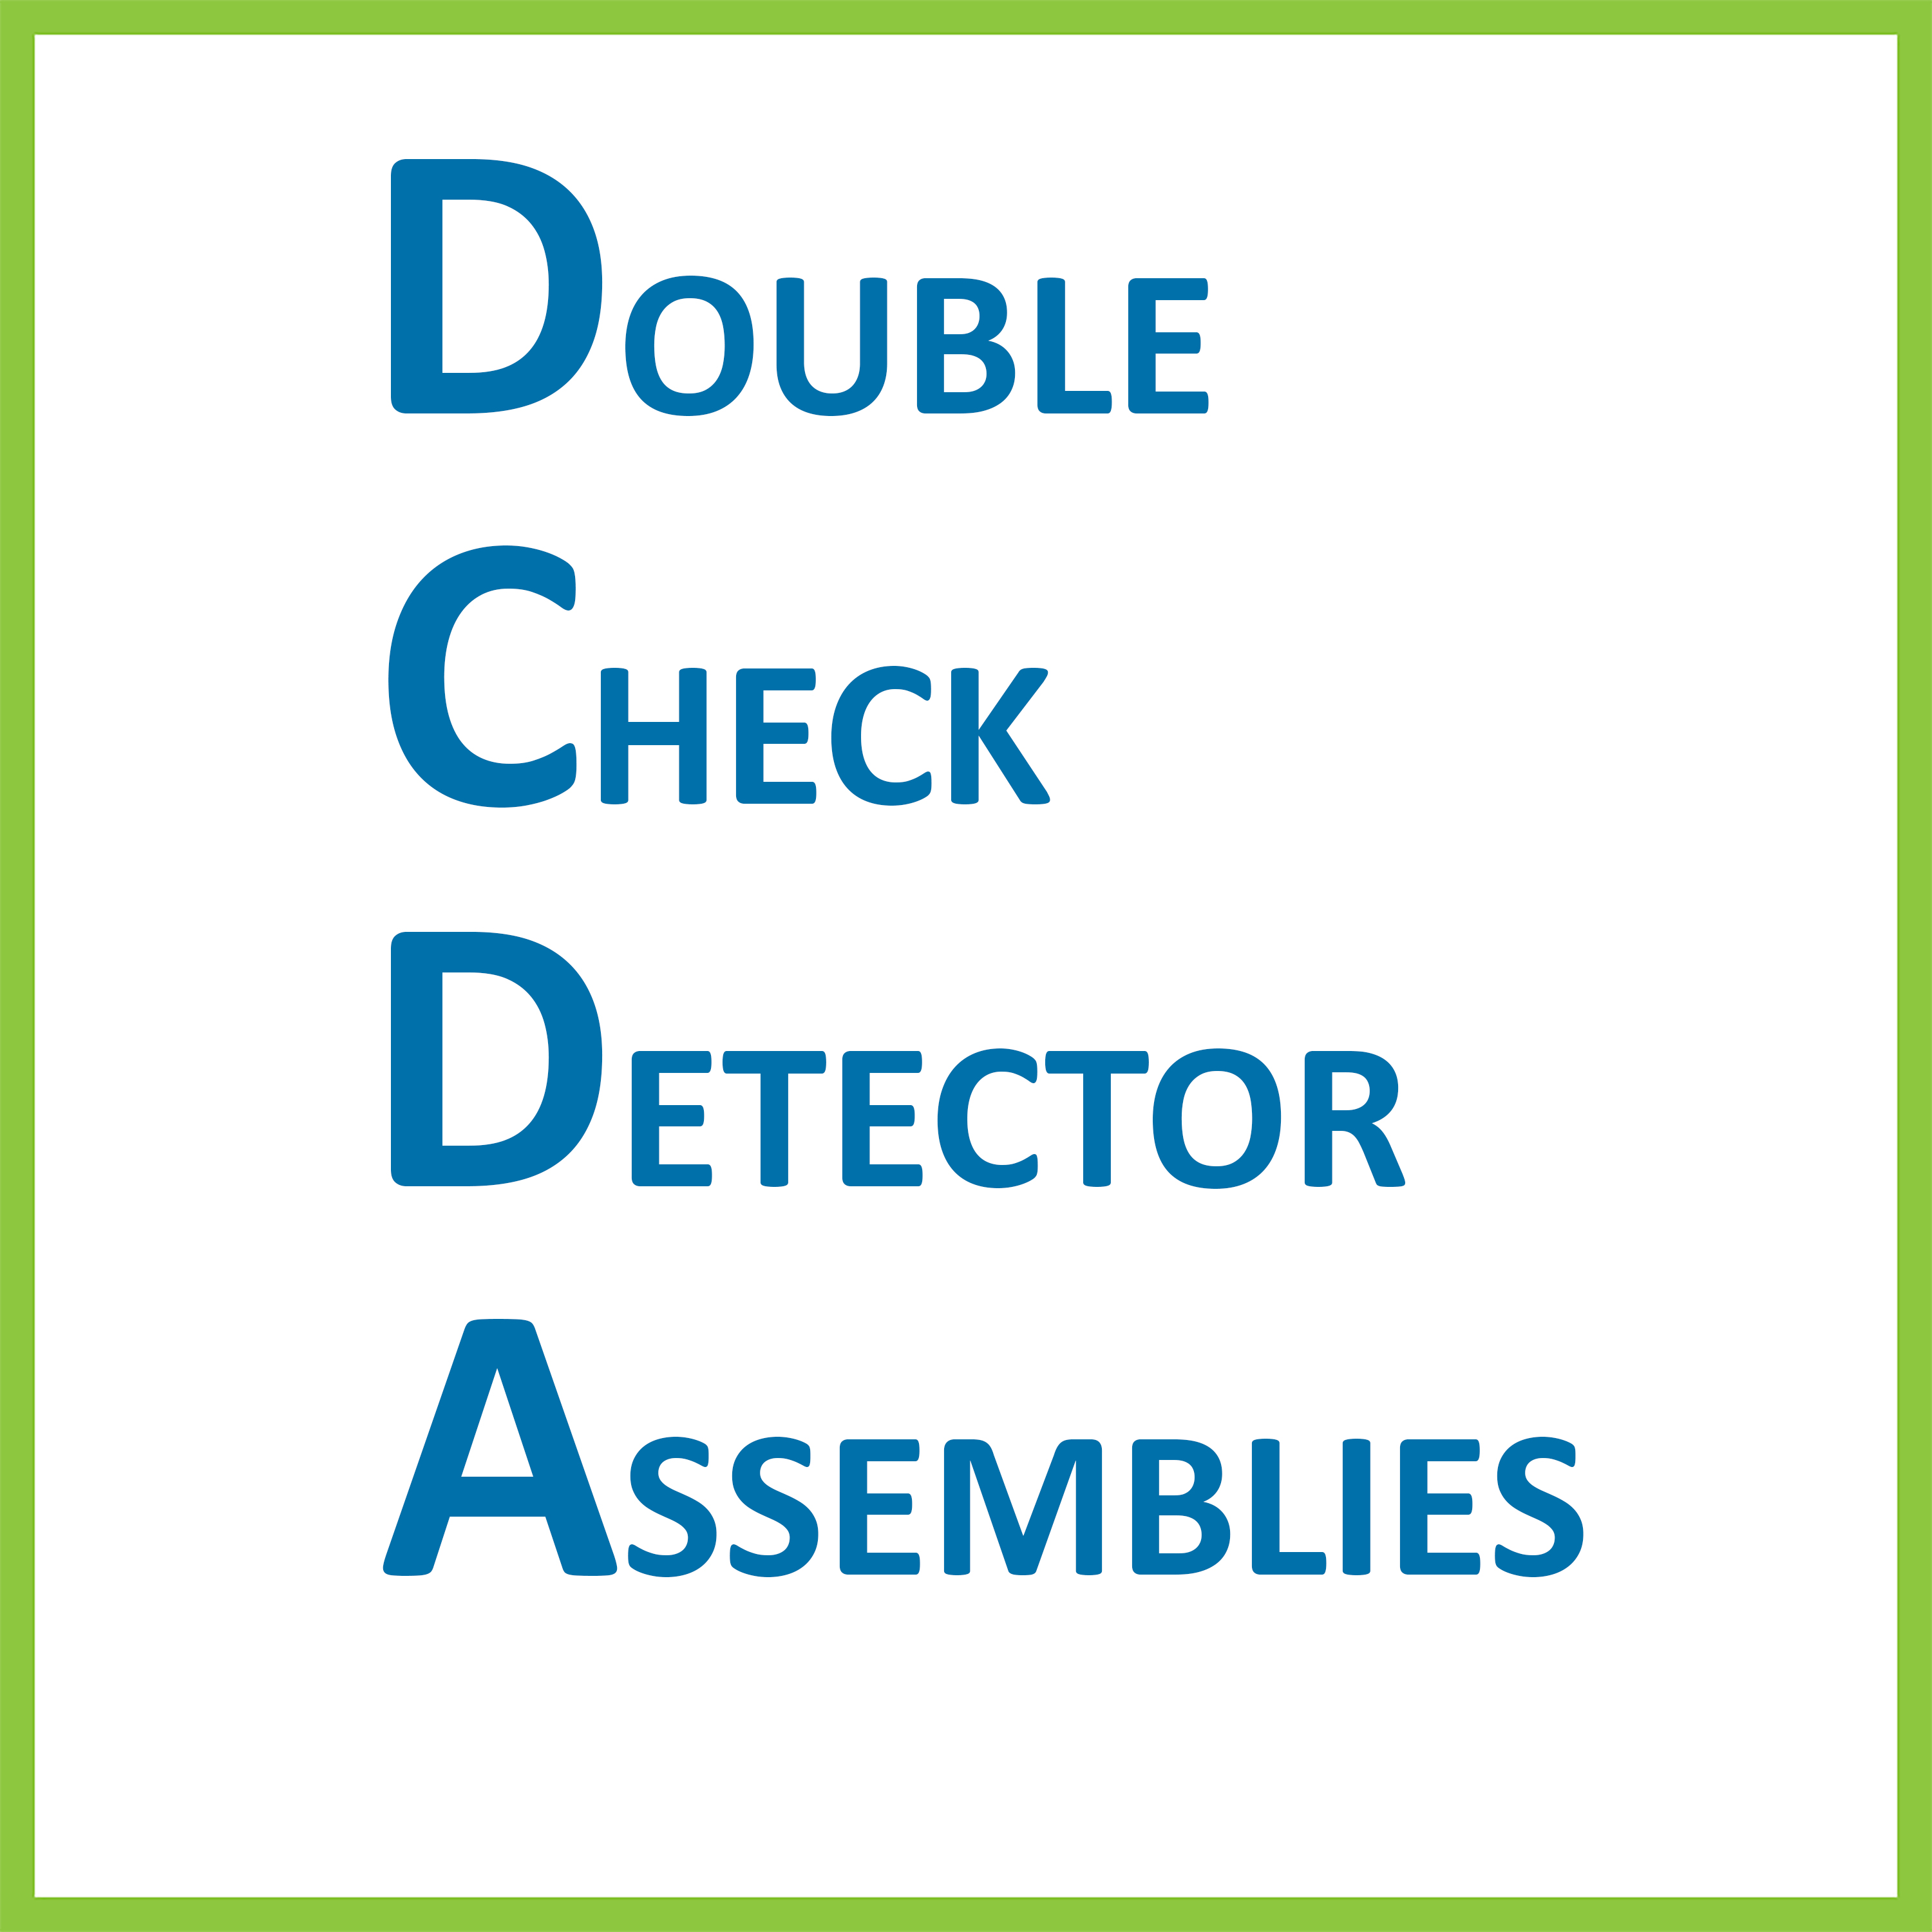 Double Check Detector Assemblies